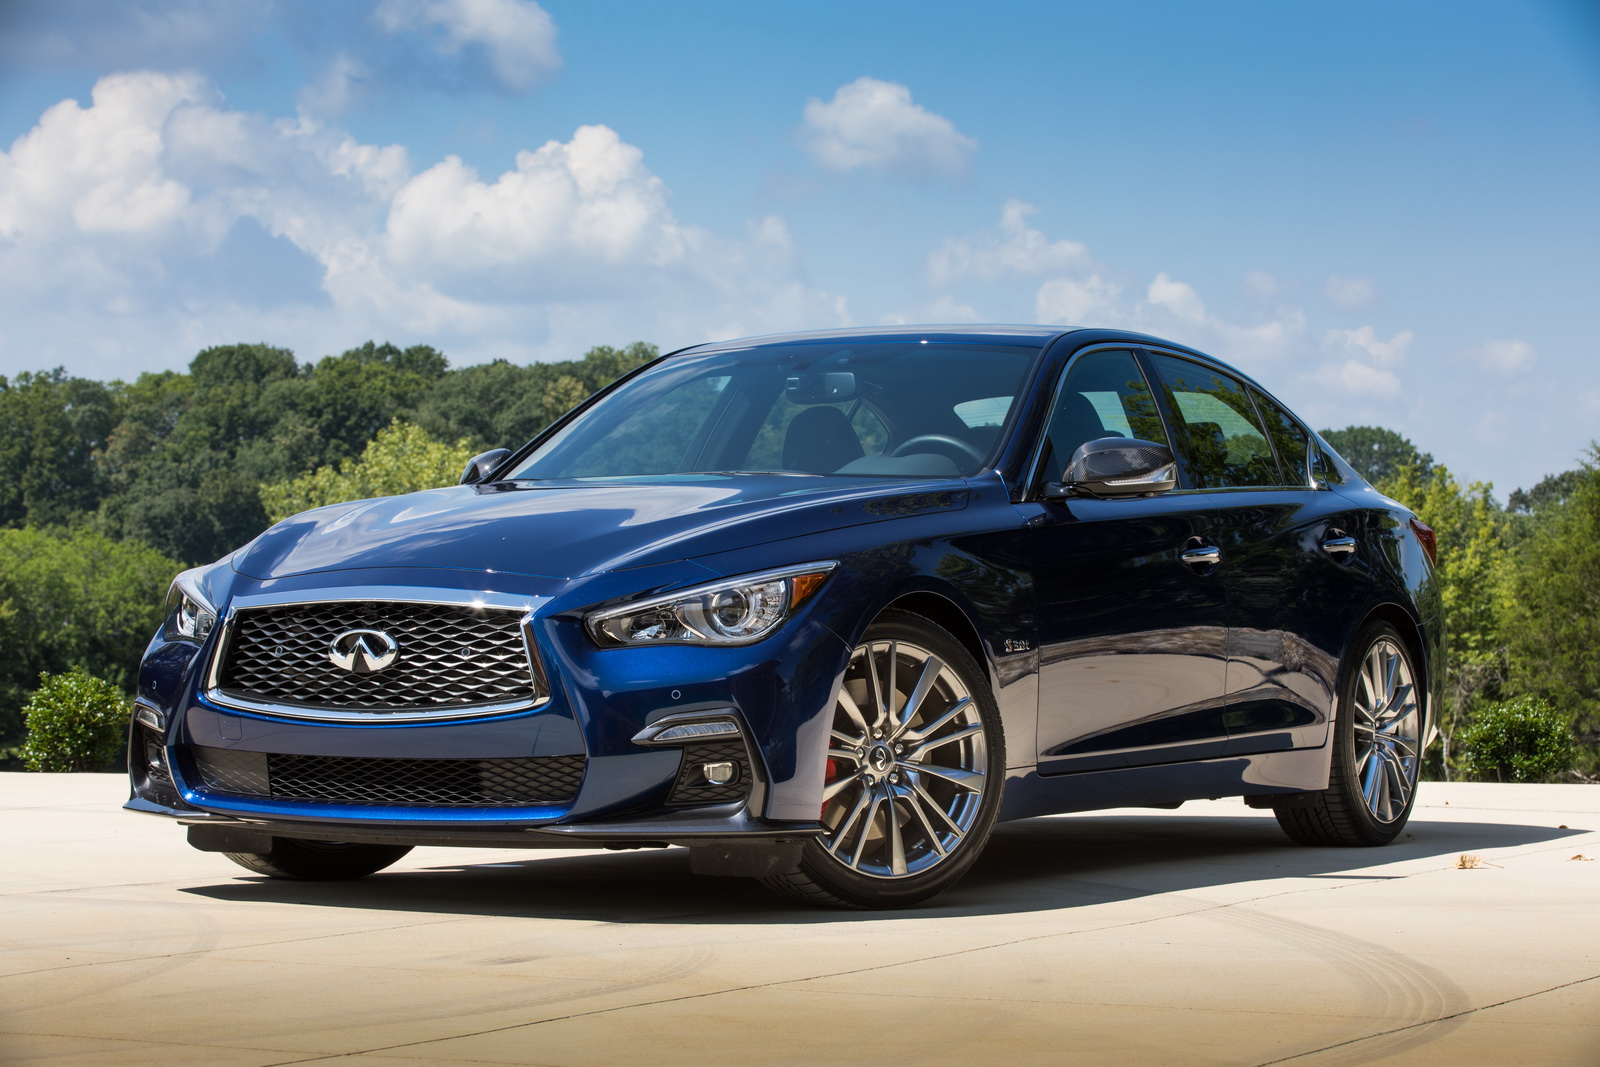 refreshed 2018 infiniti q50 priced from 34 200 48 pics